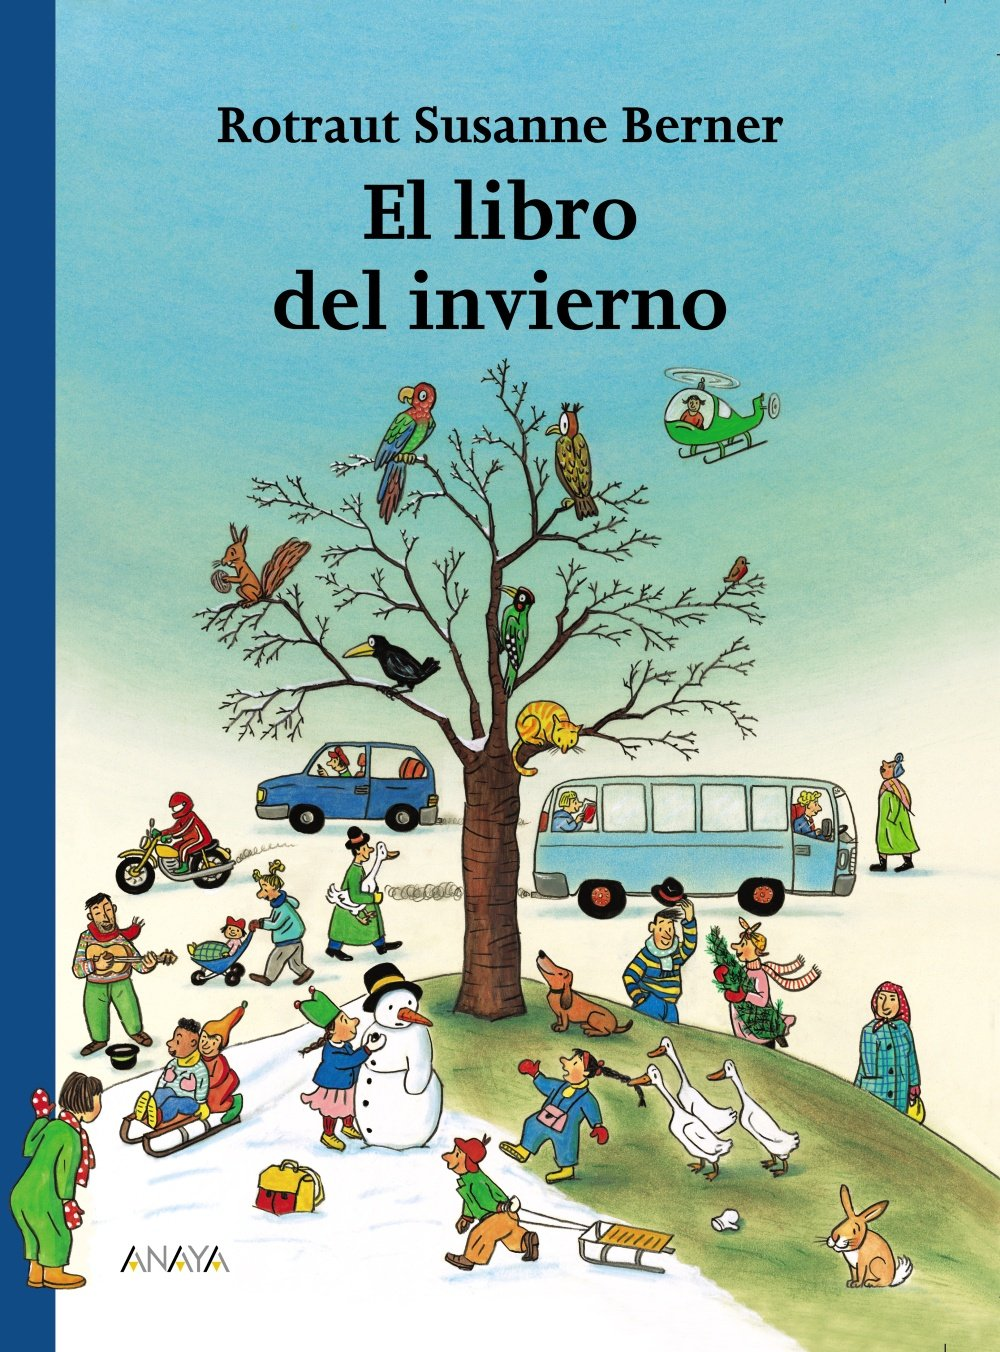 Amazon.com: El libro del invierno/ The Winter Book (Spanish Edition) (9788466740135): Rotraut Susanne Berner: Books